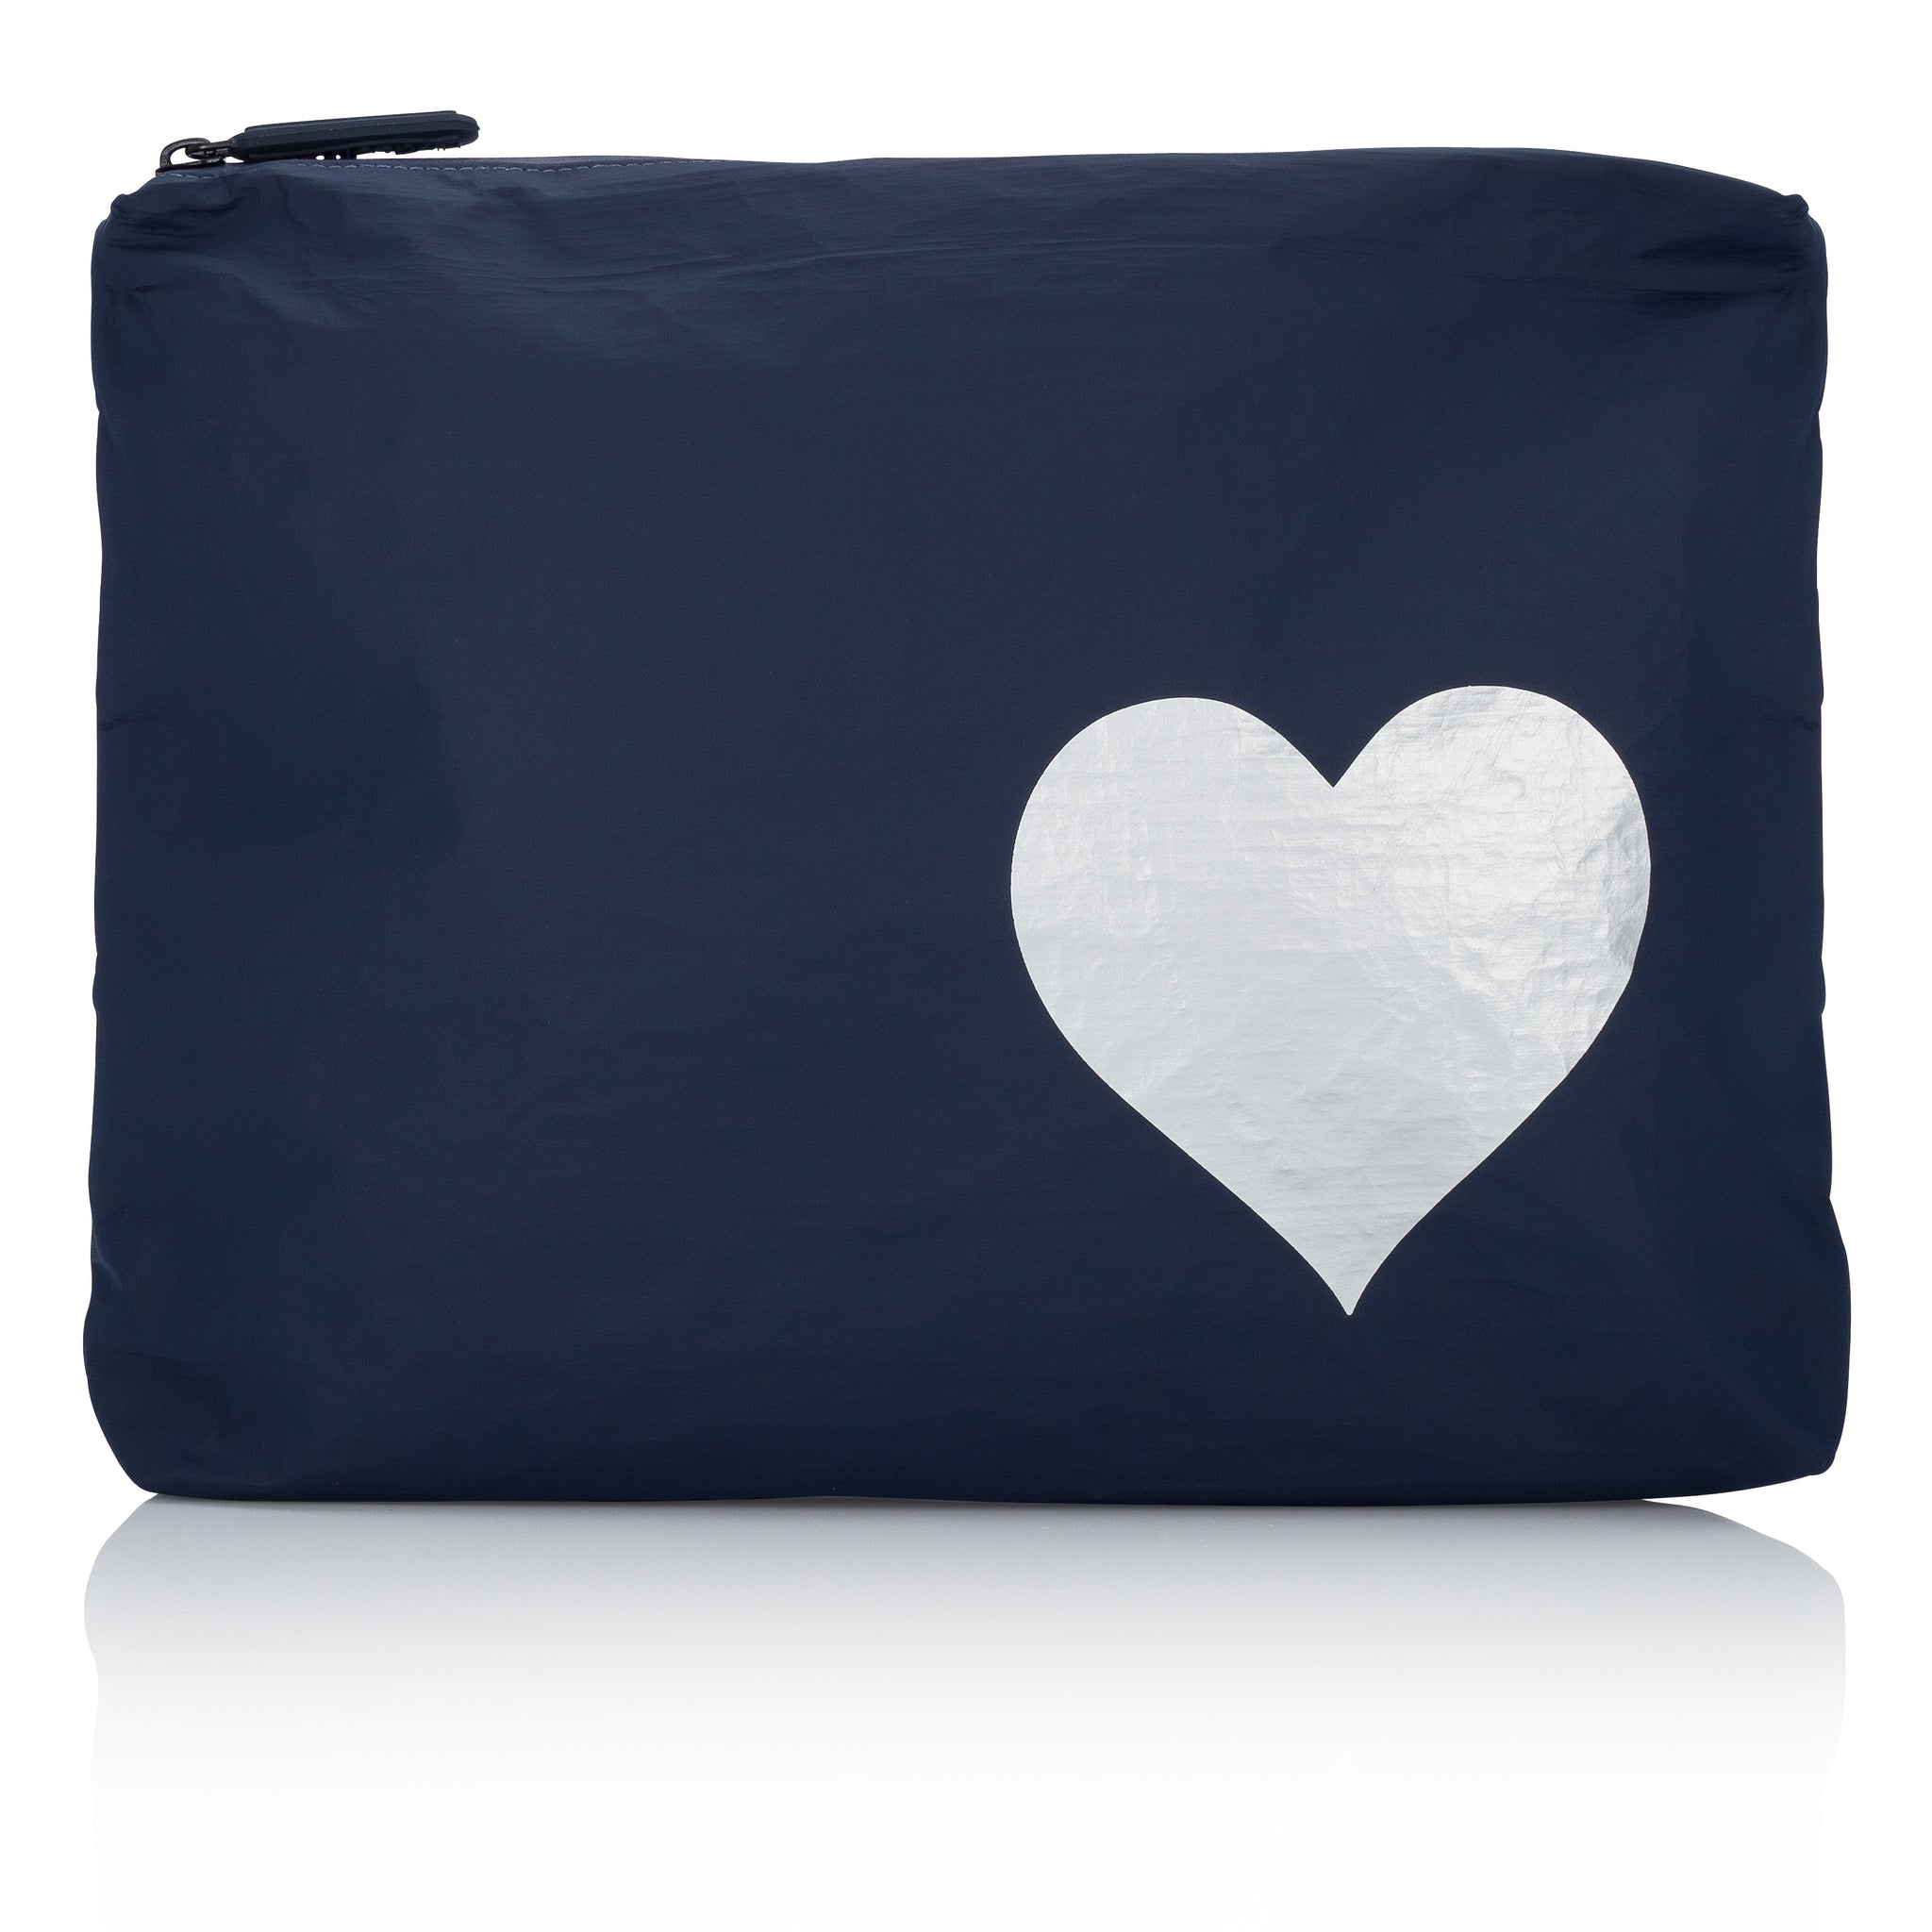 Makeup Pouch - Travel Pack - Toiletry Bag - Medium Pack - Navy with Silver Heart